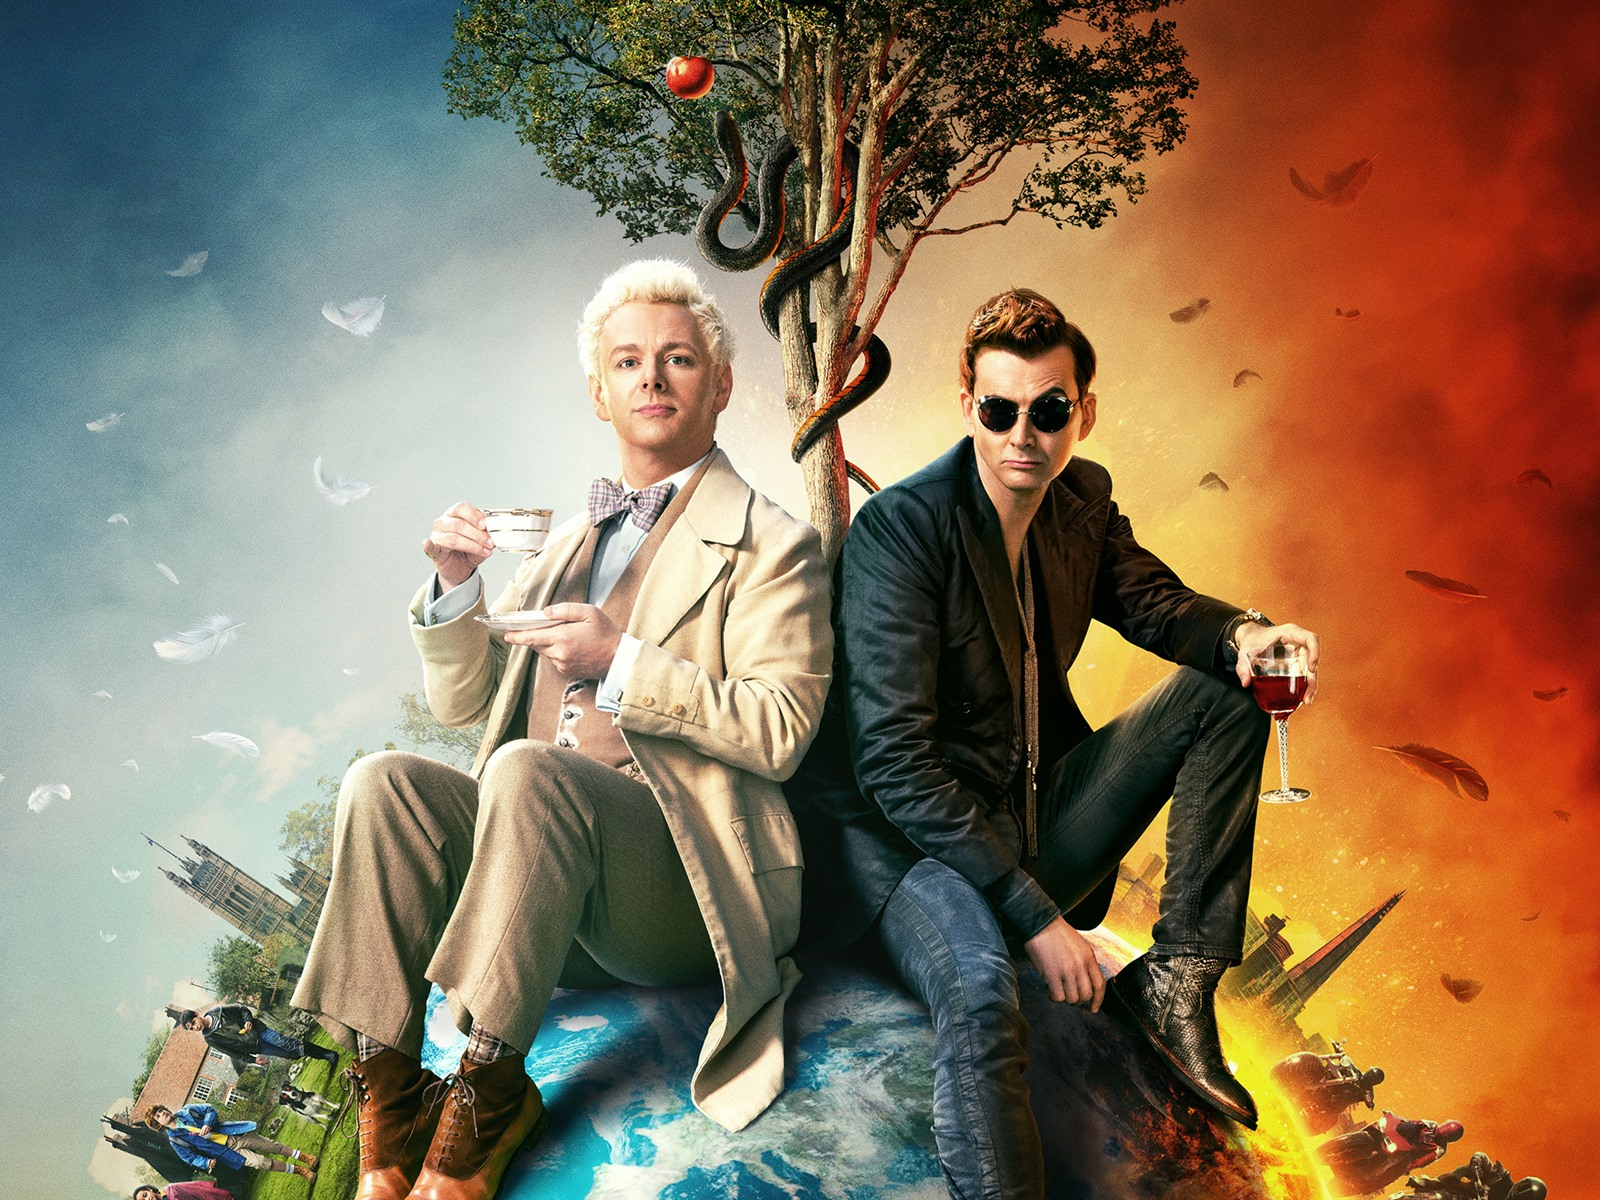 Wallpaper Good Omens 1920x1440 HD Picture Image 1600x1200